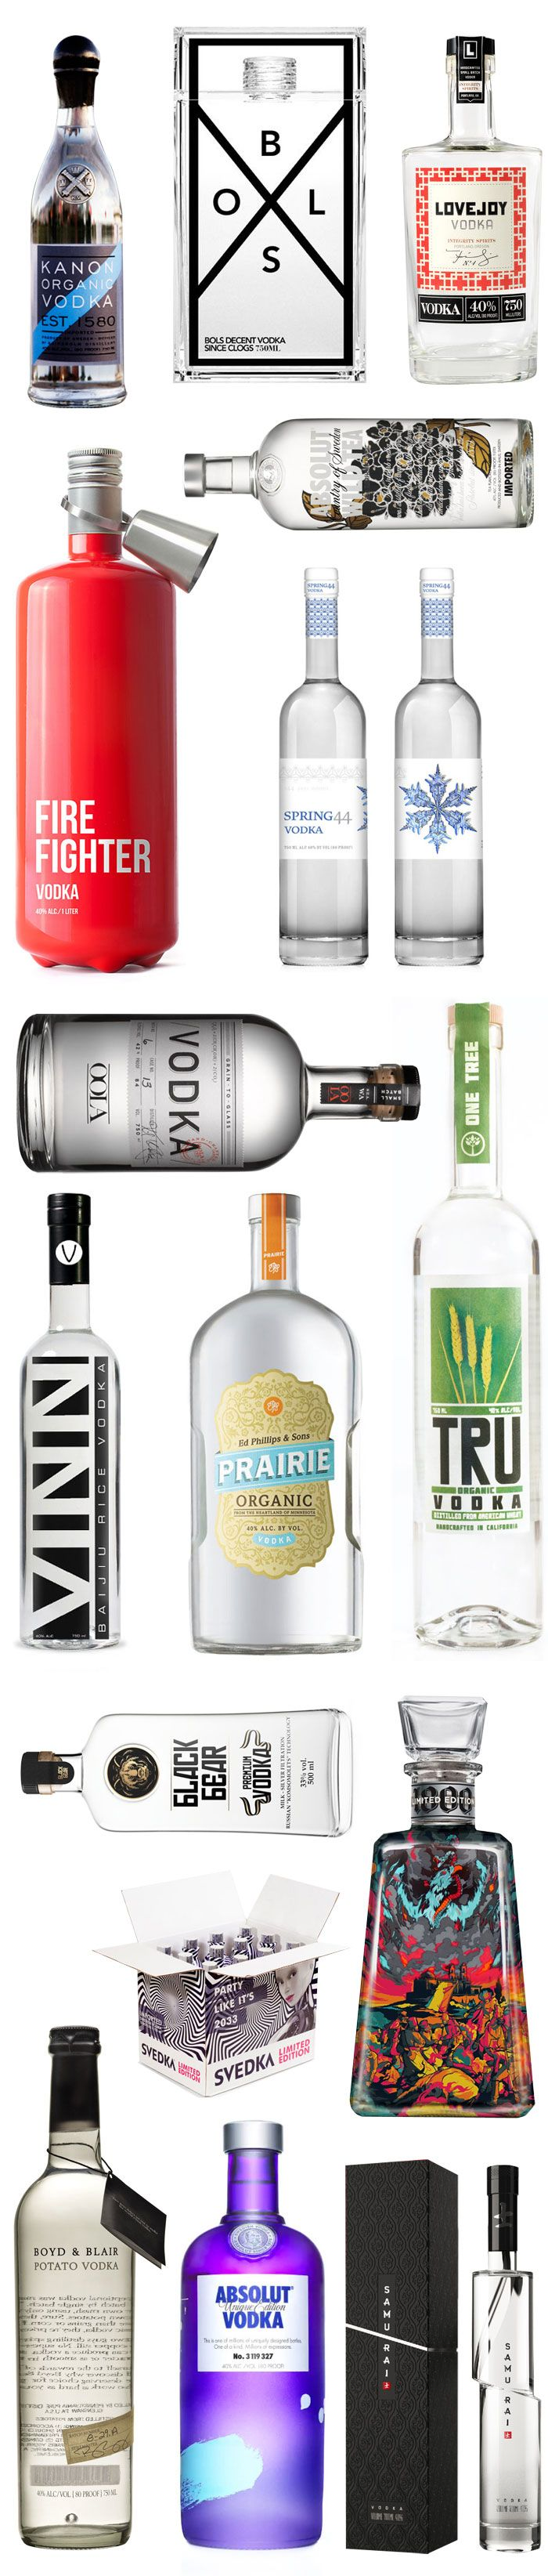 National Vodka Day. Here's some great bottles #packaging via @thedieline